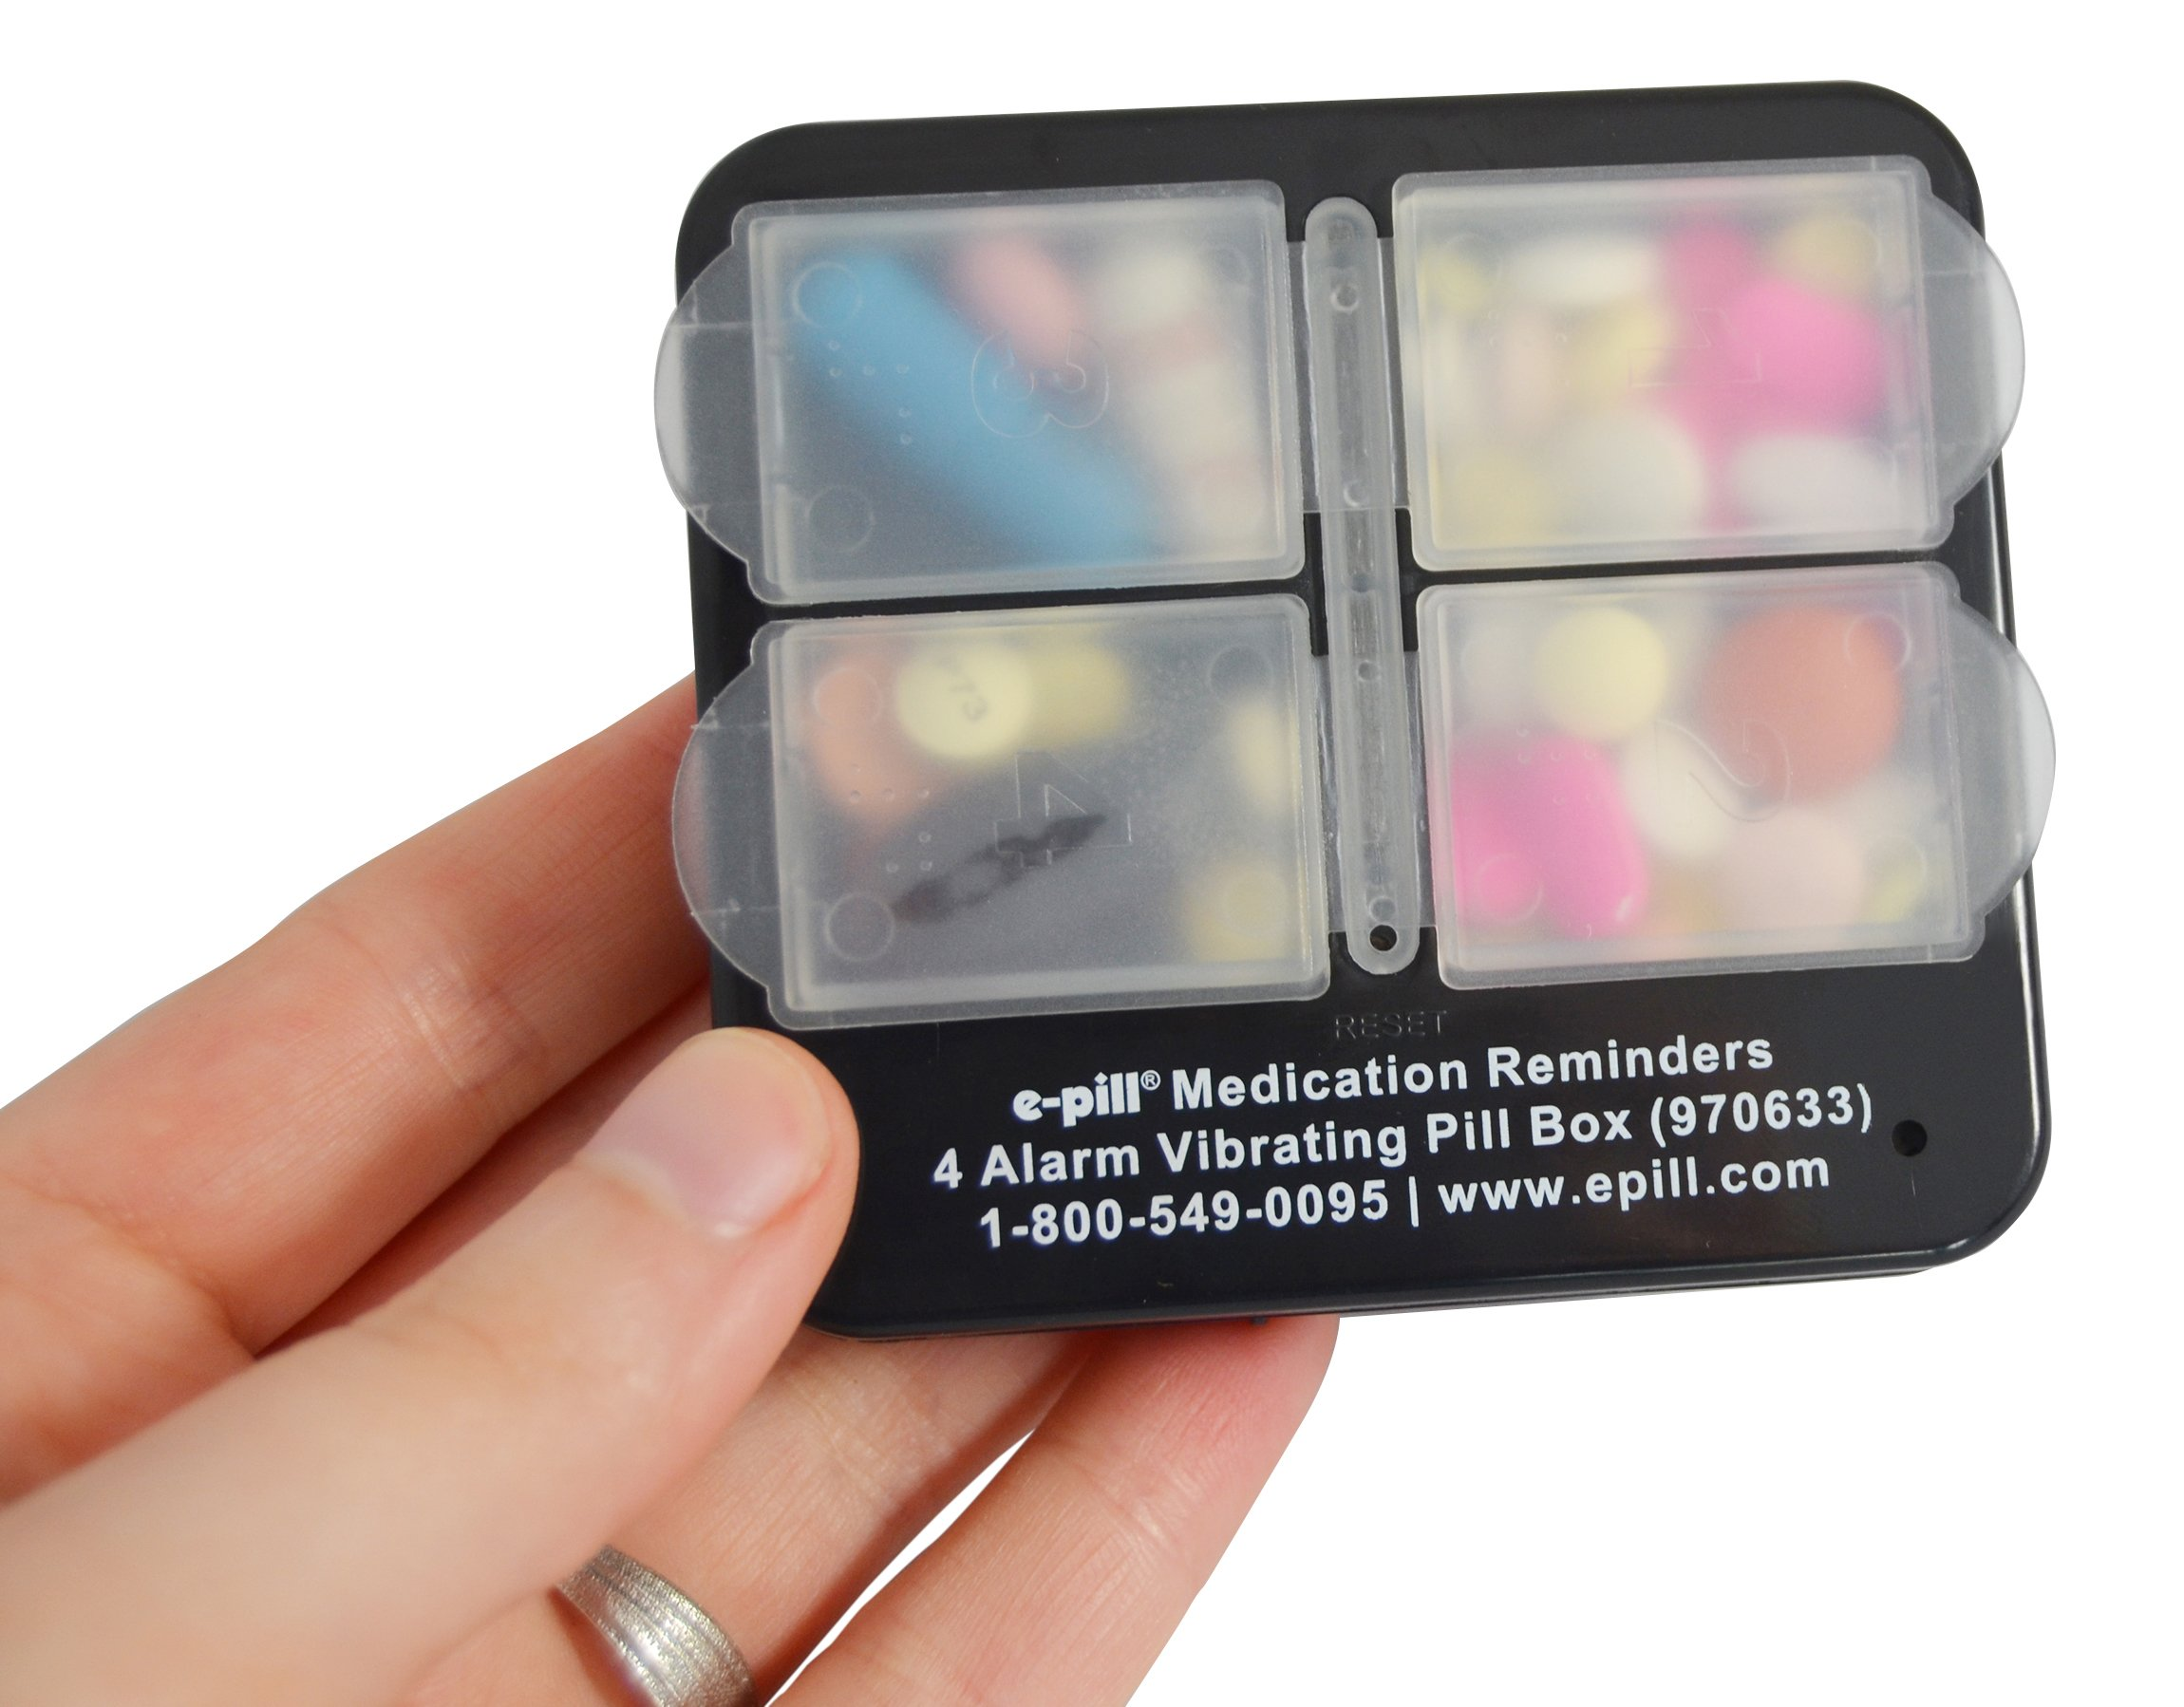 4 Alarm Pill Box Organizer with Vibration Reminder. Pillbox in two color choices (Black) by e-pill Medication Reminders